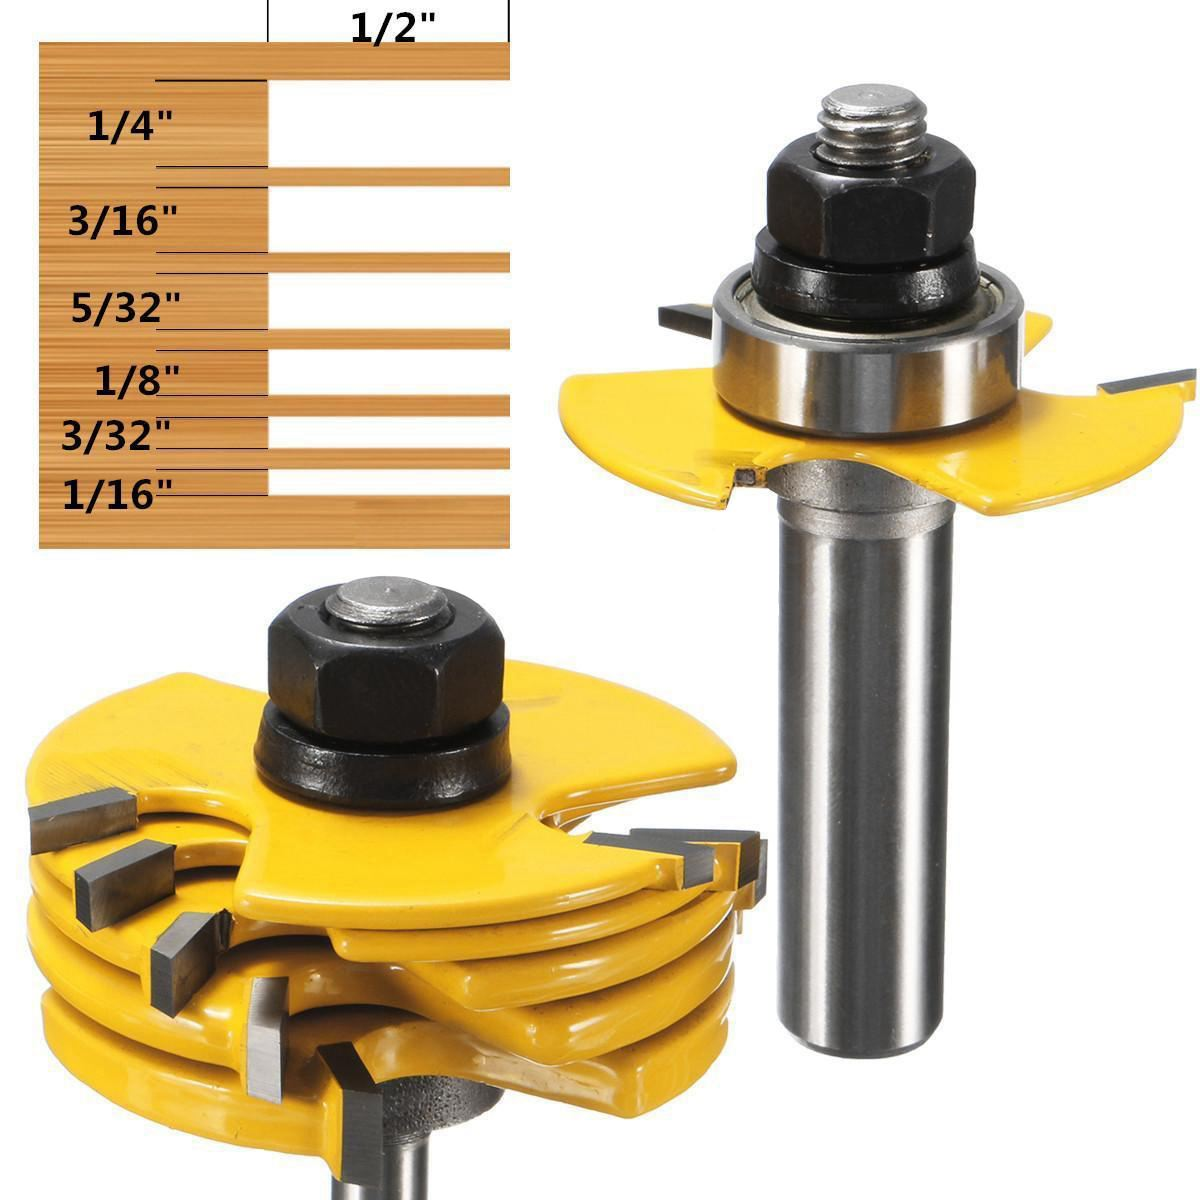 Best Price 2Pcs Slot Cutter 3 Wing Router Bit 1/2 &1/4 Inch Shank Adjustable Woodworking Tool